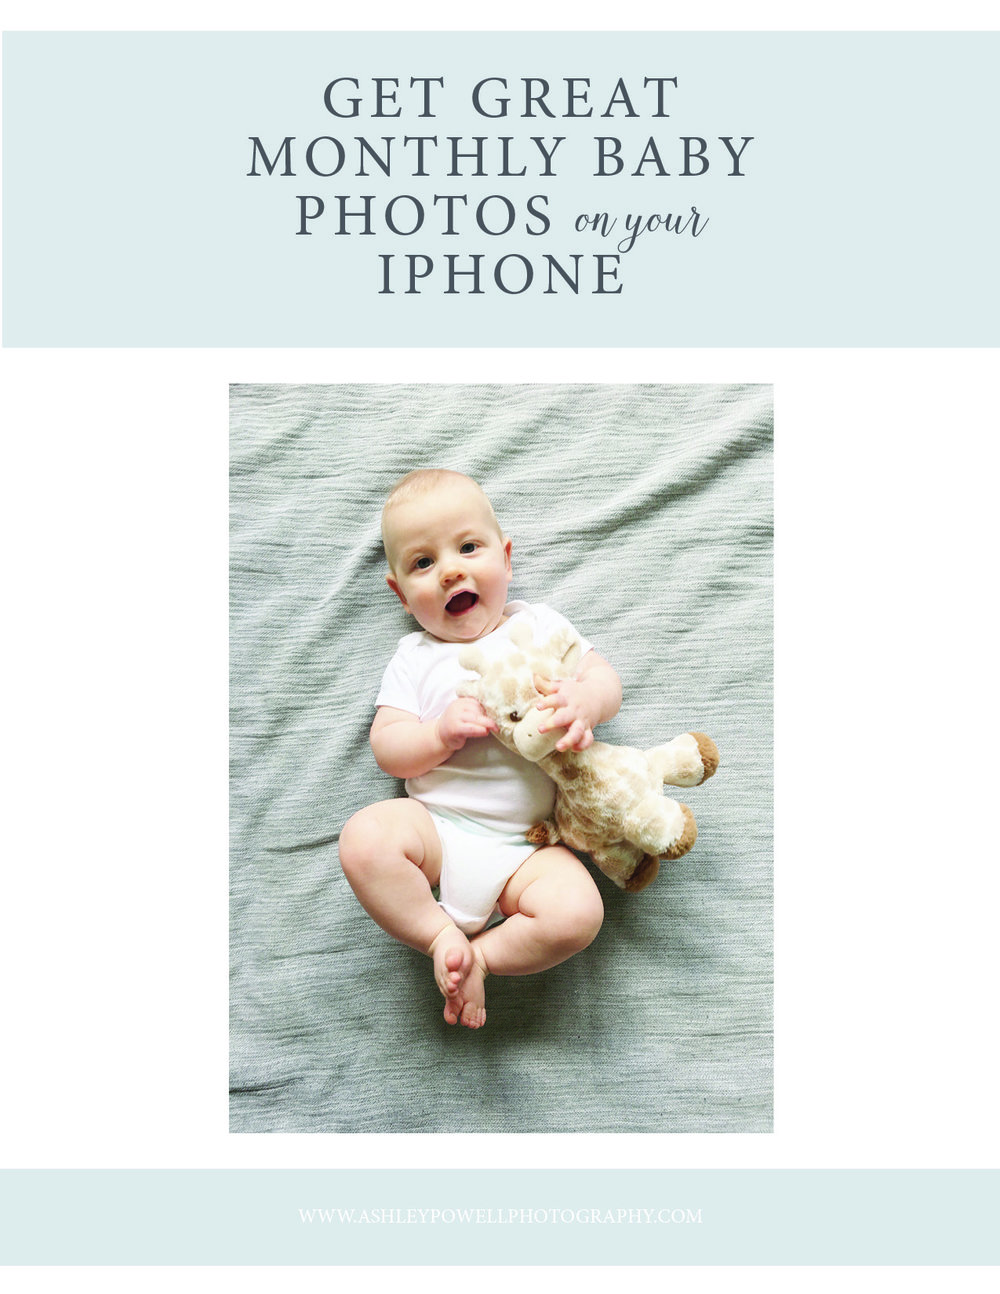 Get Great Monthly Baby Photos on you Iphone (G).jpg